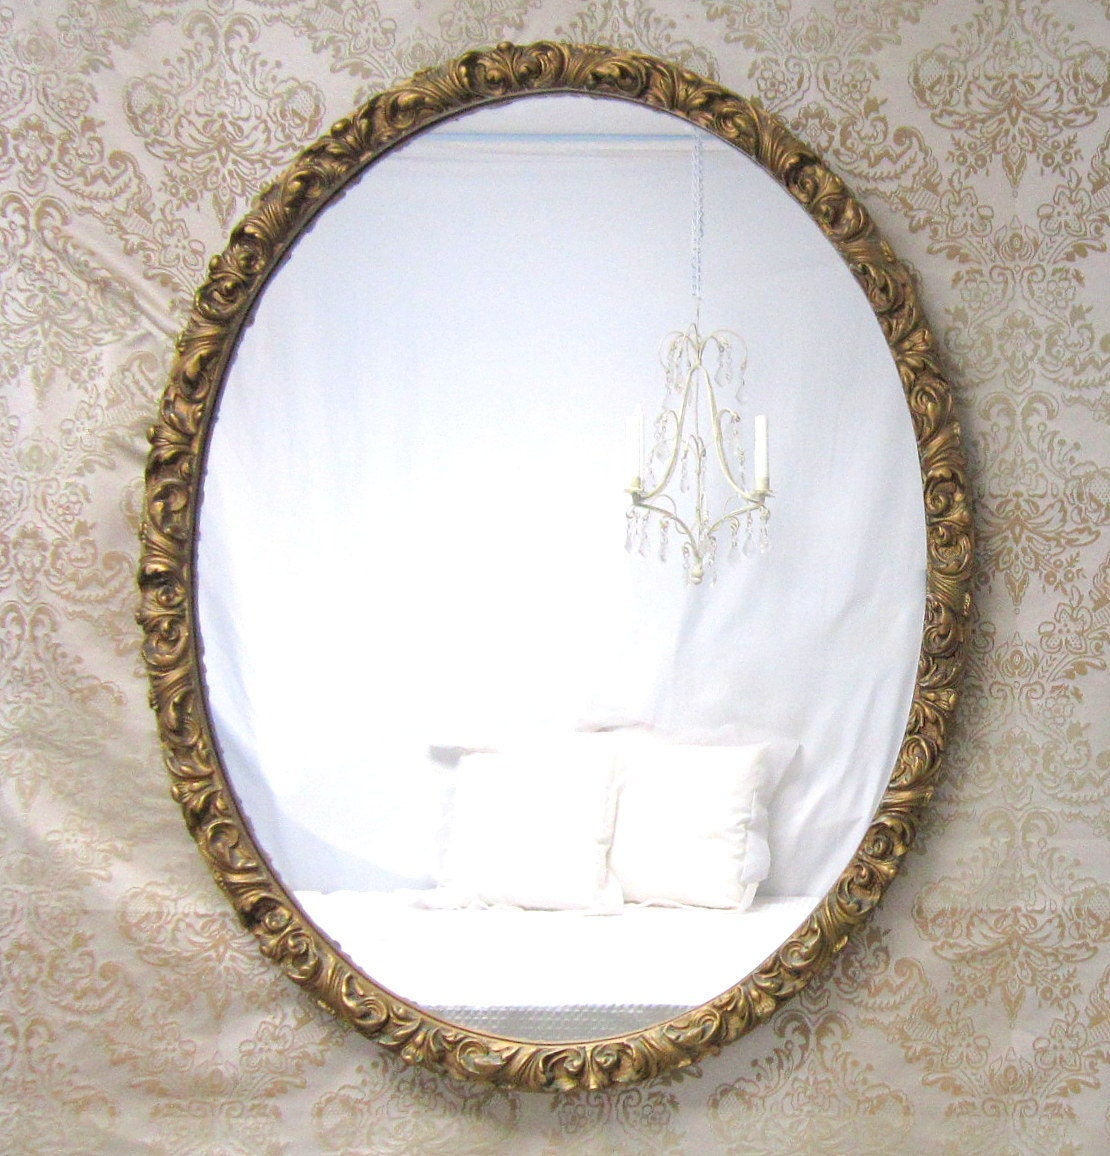 Decorative antique mirror for sale large oval by for Decorative wall mirrors for sale